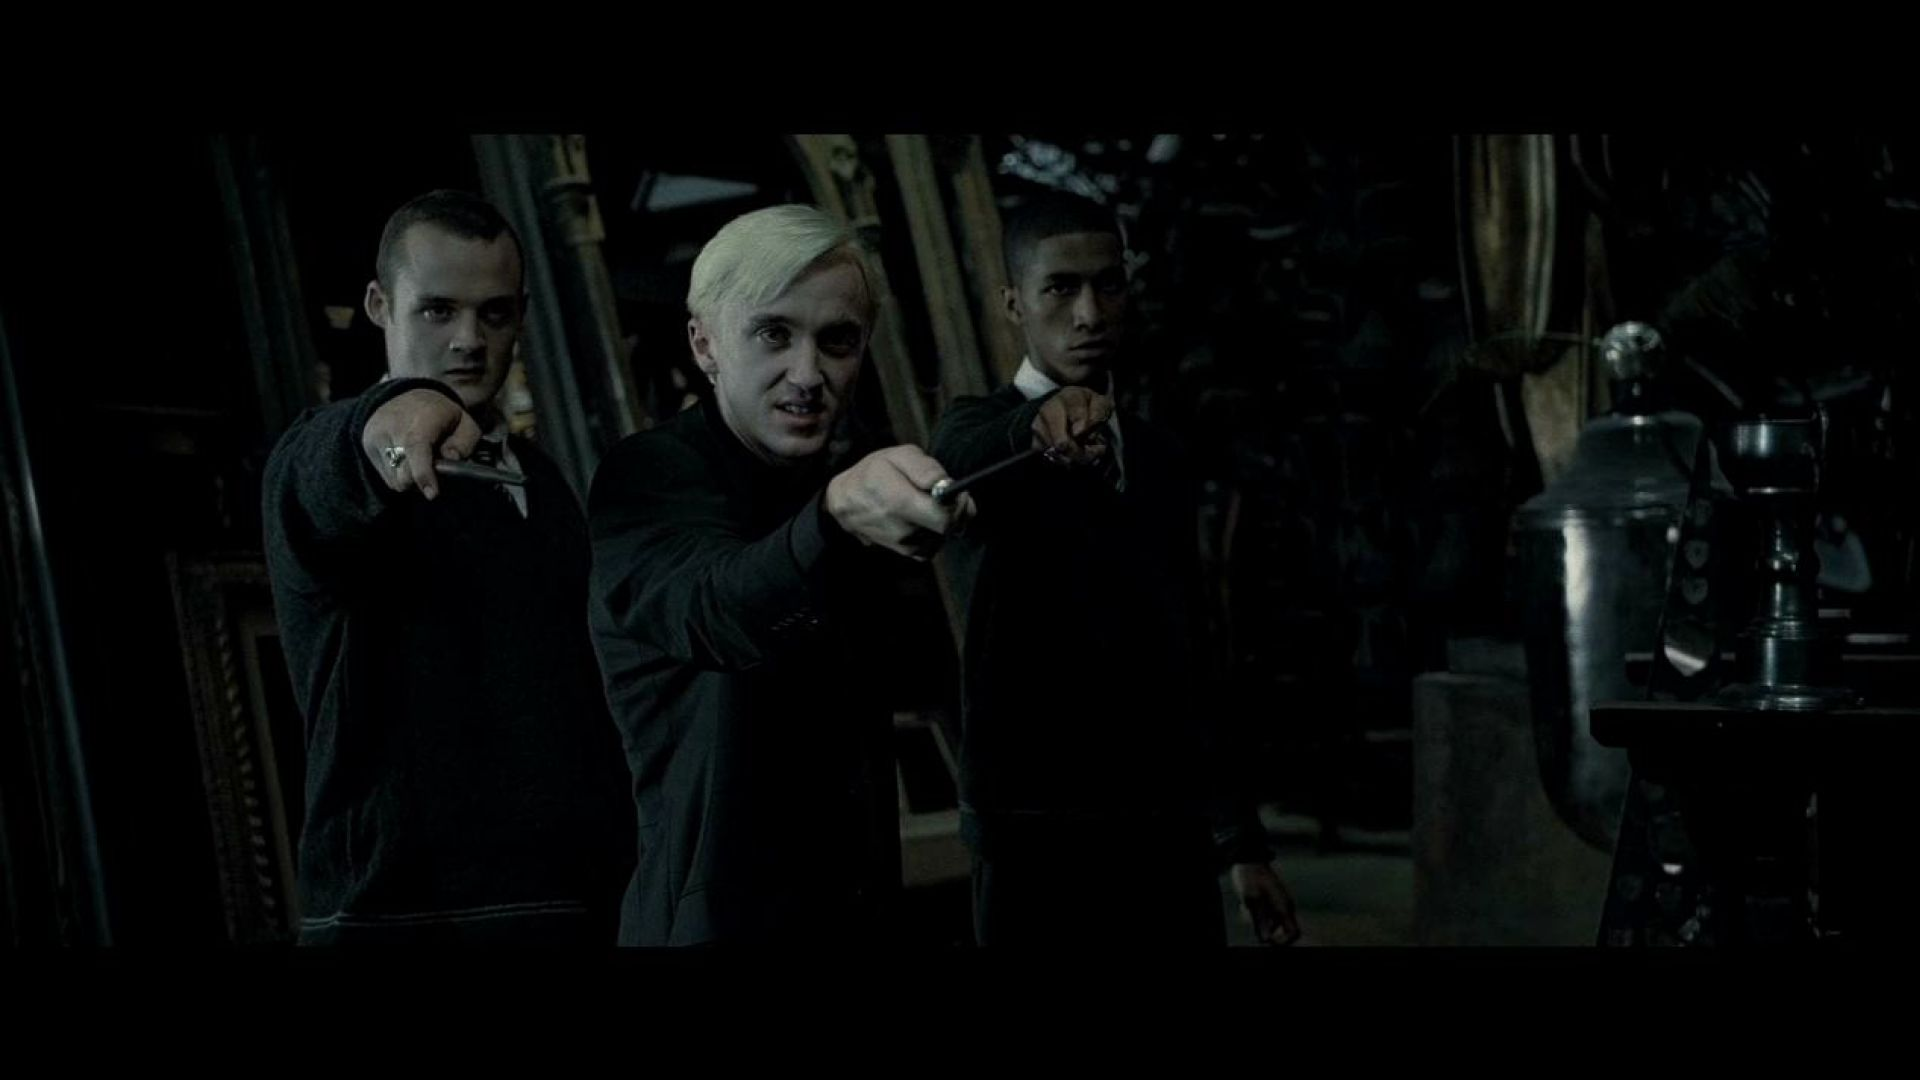 Draco Malfoy vs Harry Potter, the final confrontation